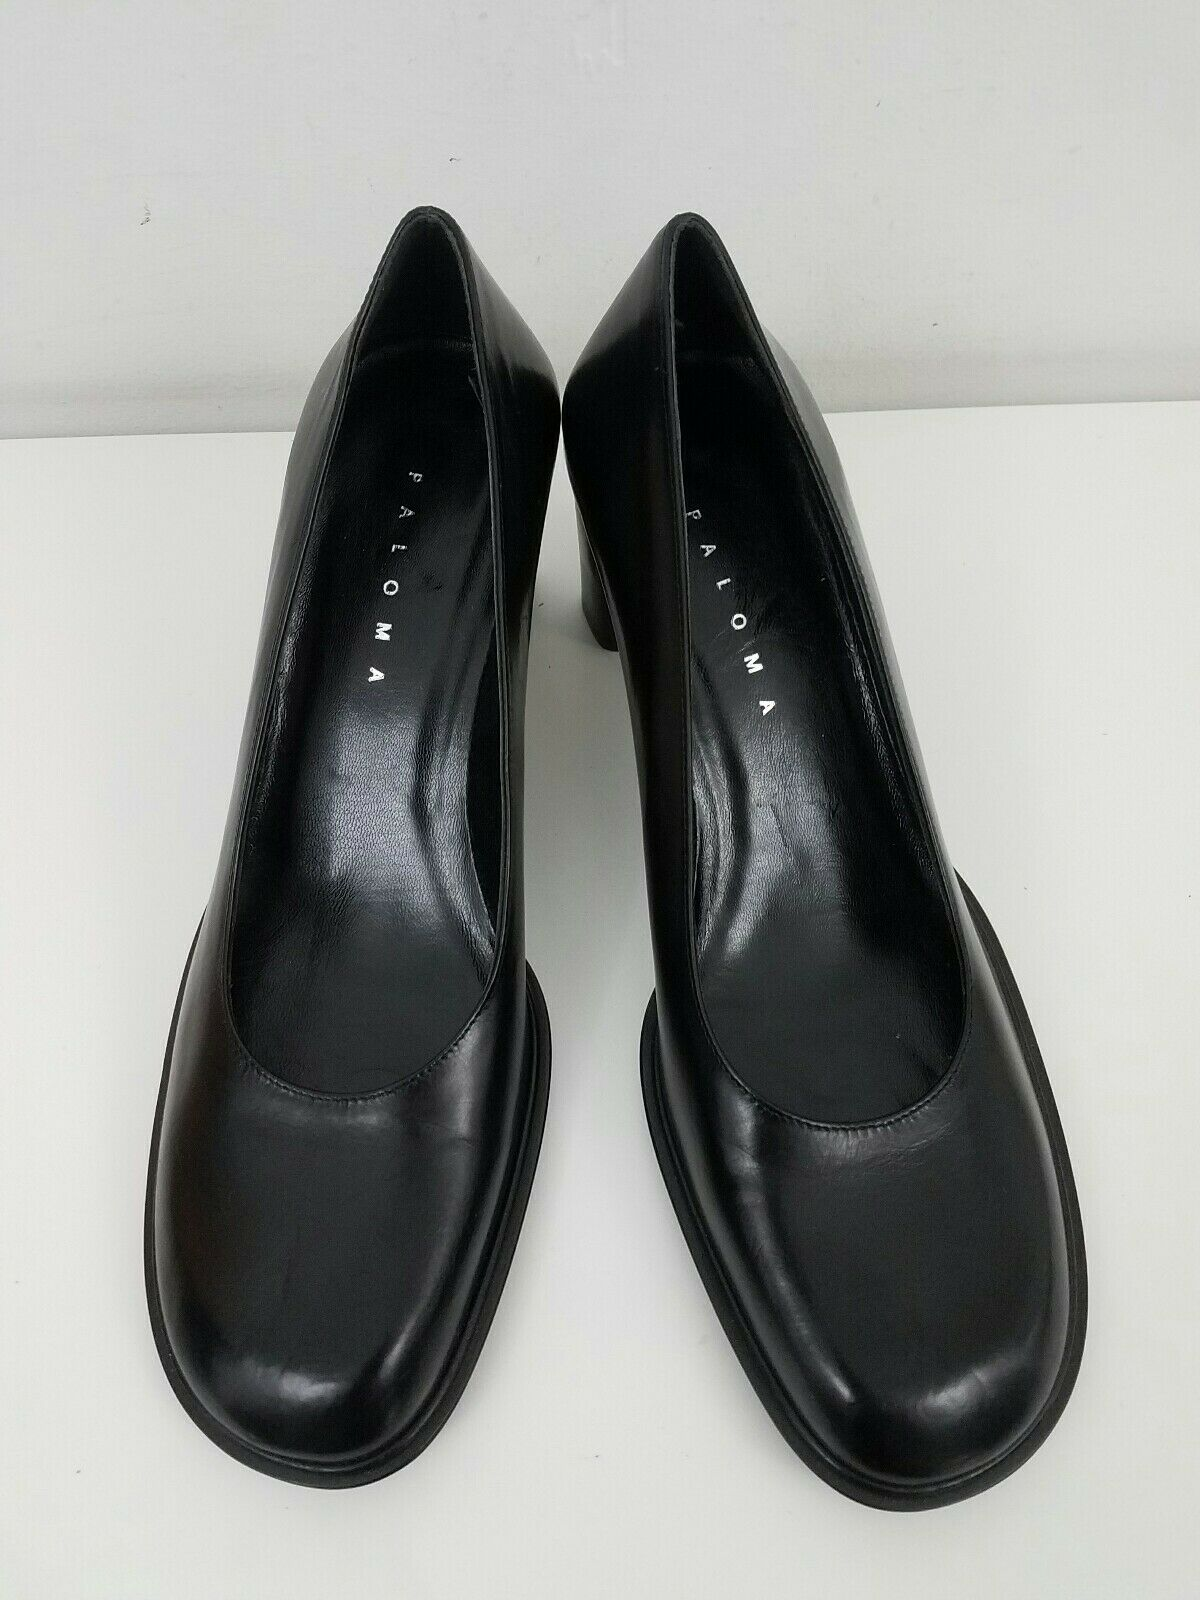 New Paloma  Women shoes Size 8.5 Navy Classic Pumps Block Heels Round Toe